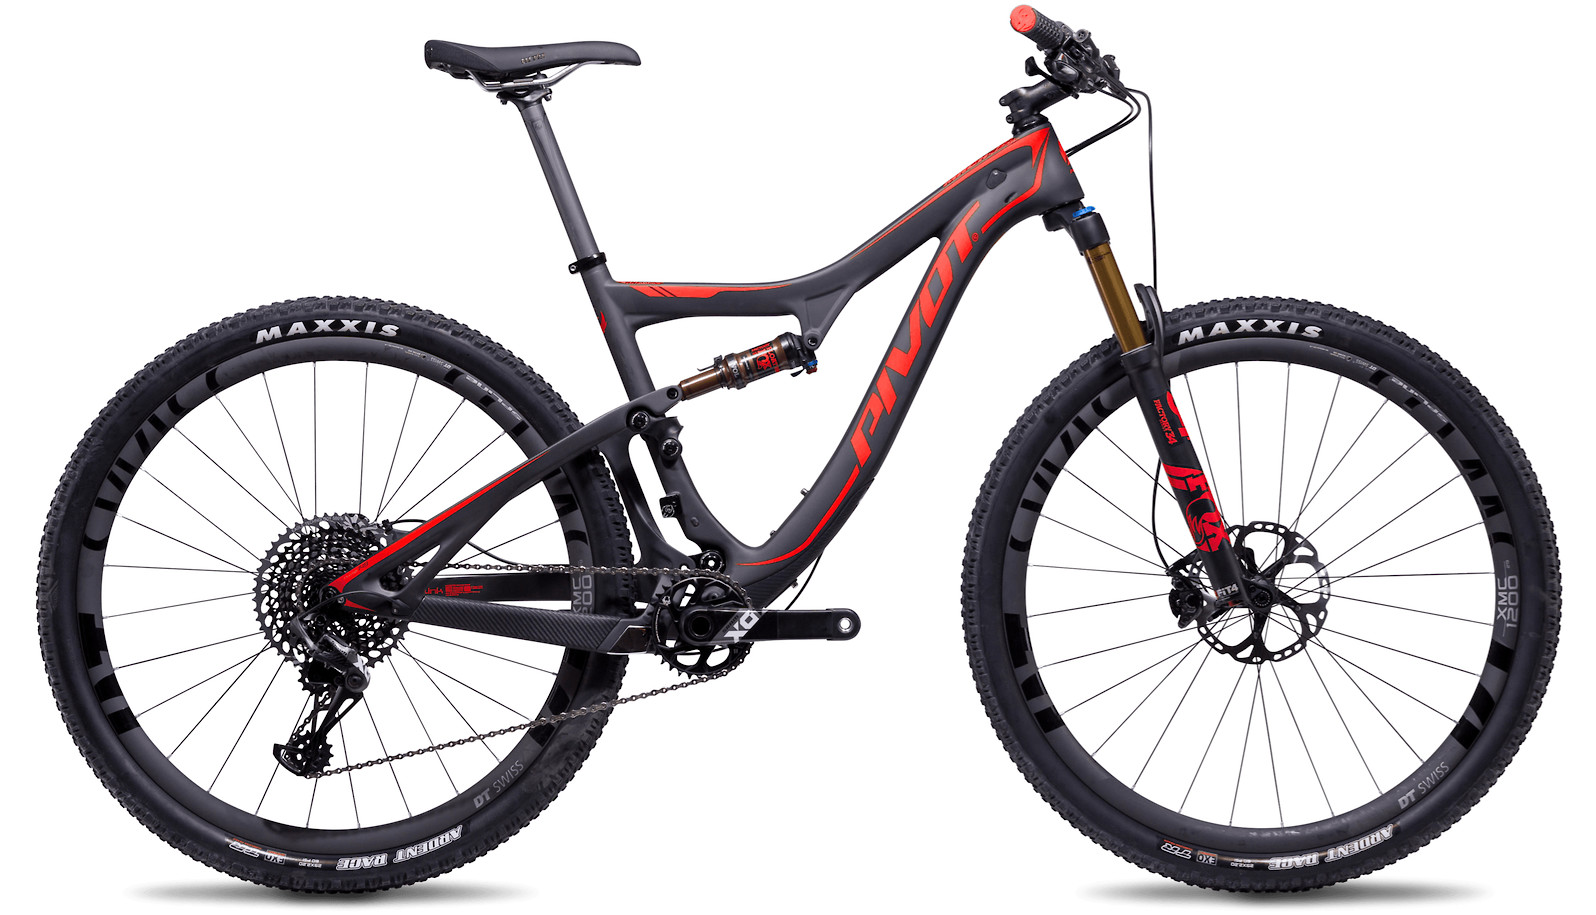 Factory Red (2019 Pivot Mach 429SL Pro X01 pictured)